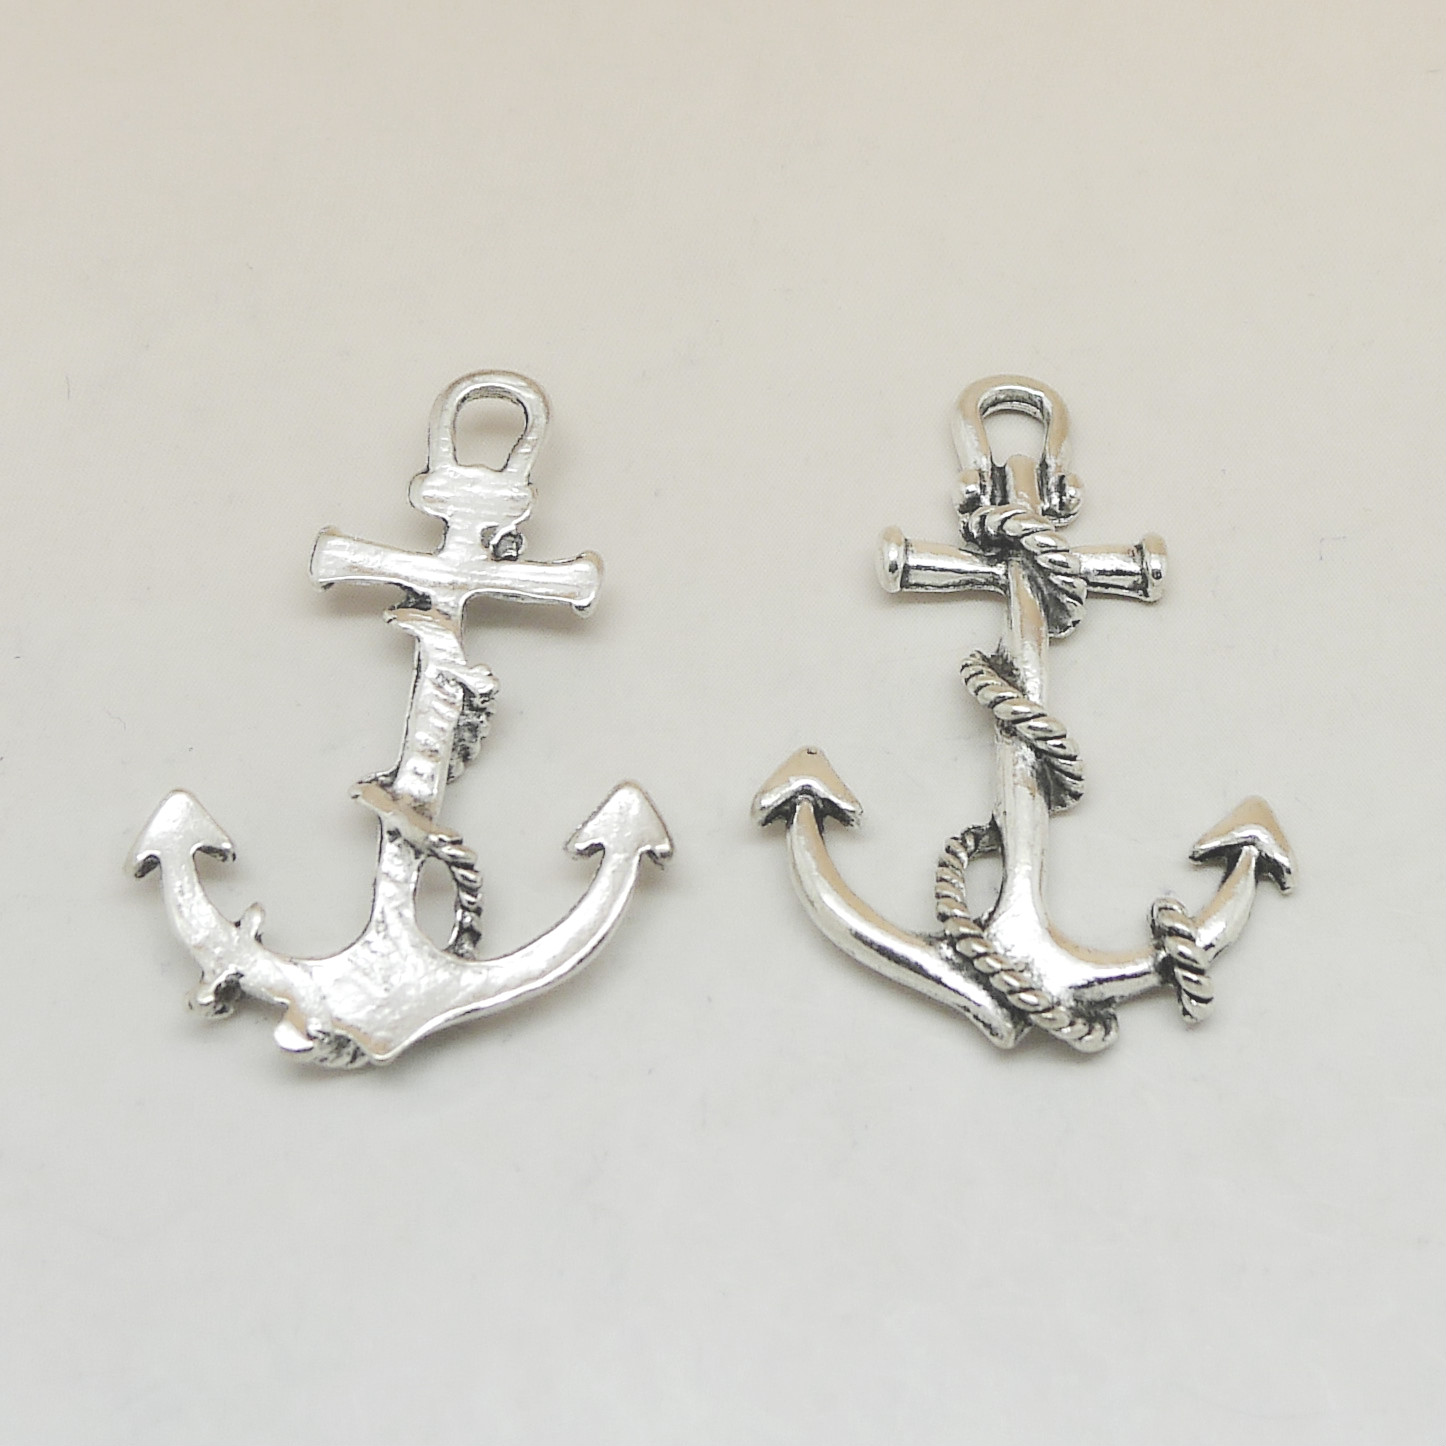 Wholesale 3pcs Lot 38x27MM DIY Vintage Antique Silver Anchor Charms For Necklace Bracelet Earring Keychain Jewelry Accessories in Charms from Jewelry Accessories